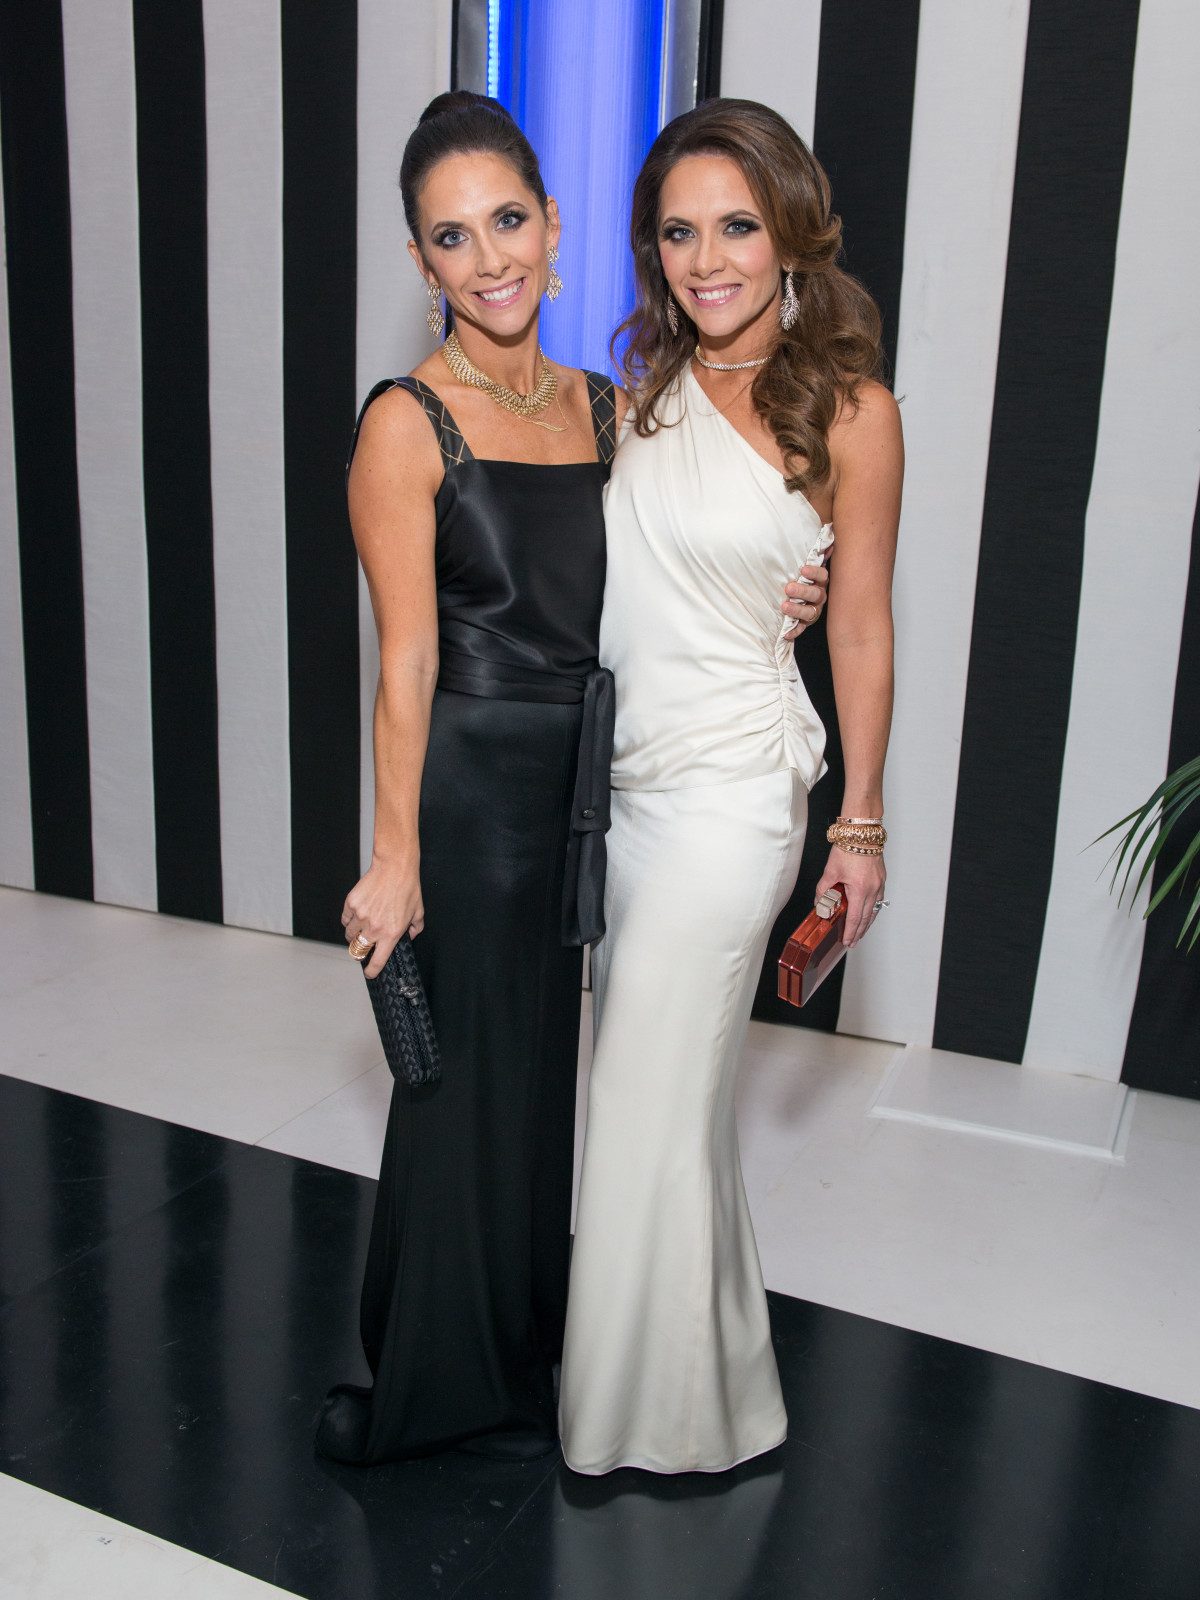 News, Shelby, MFAH gala gowns, Oct. 2015 Hannah McNair, Joanna Marks, both in Chanel